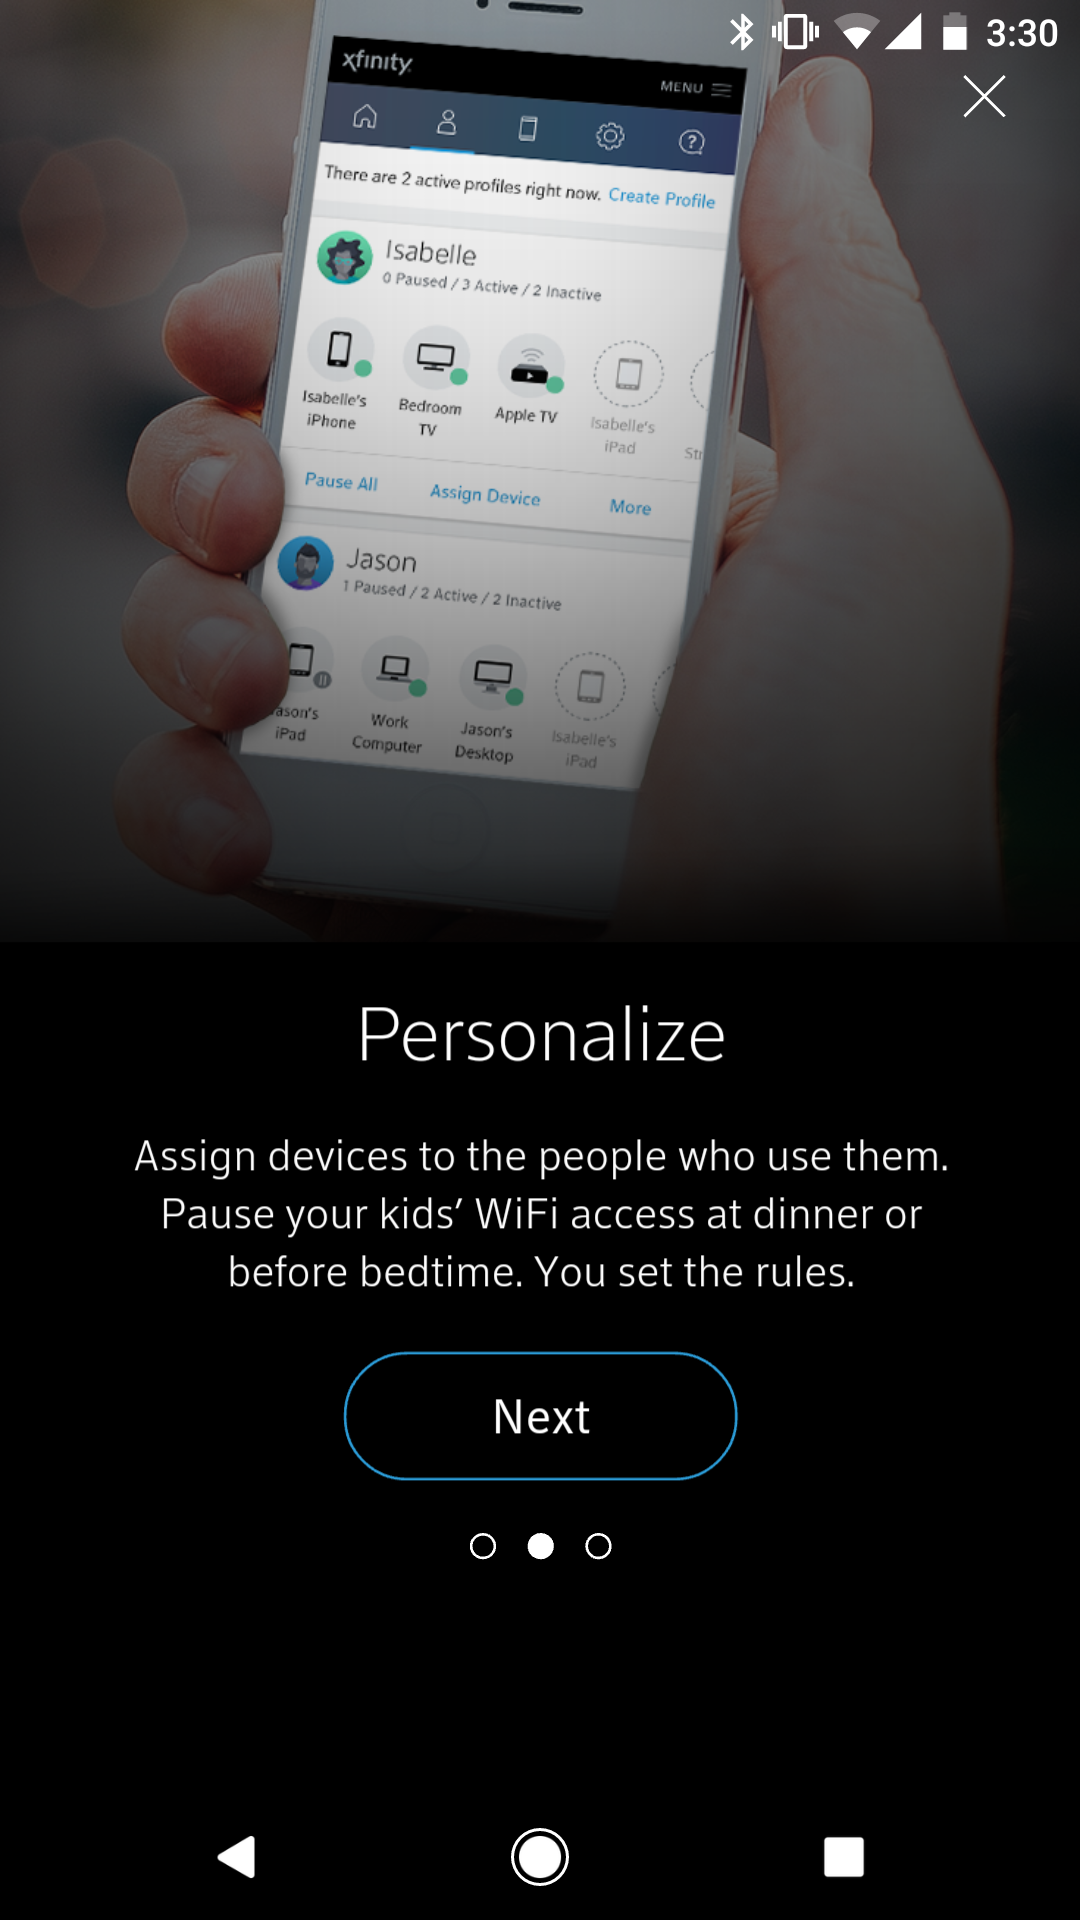 Comcast's new Xfinity xFi app gives you more control over